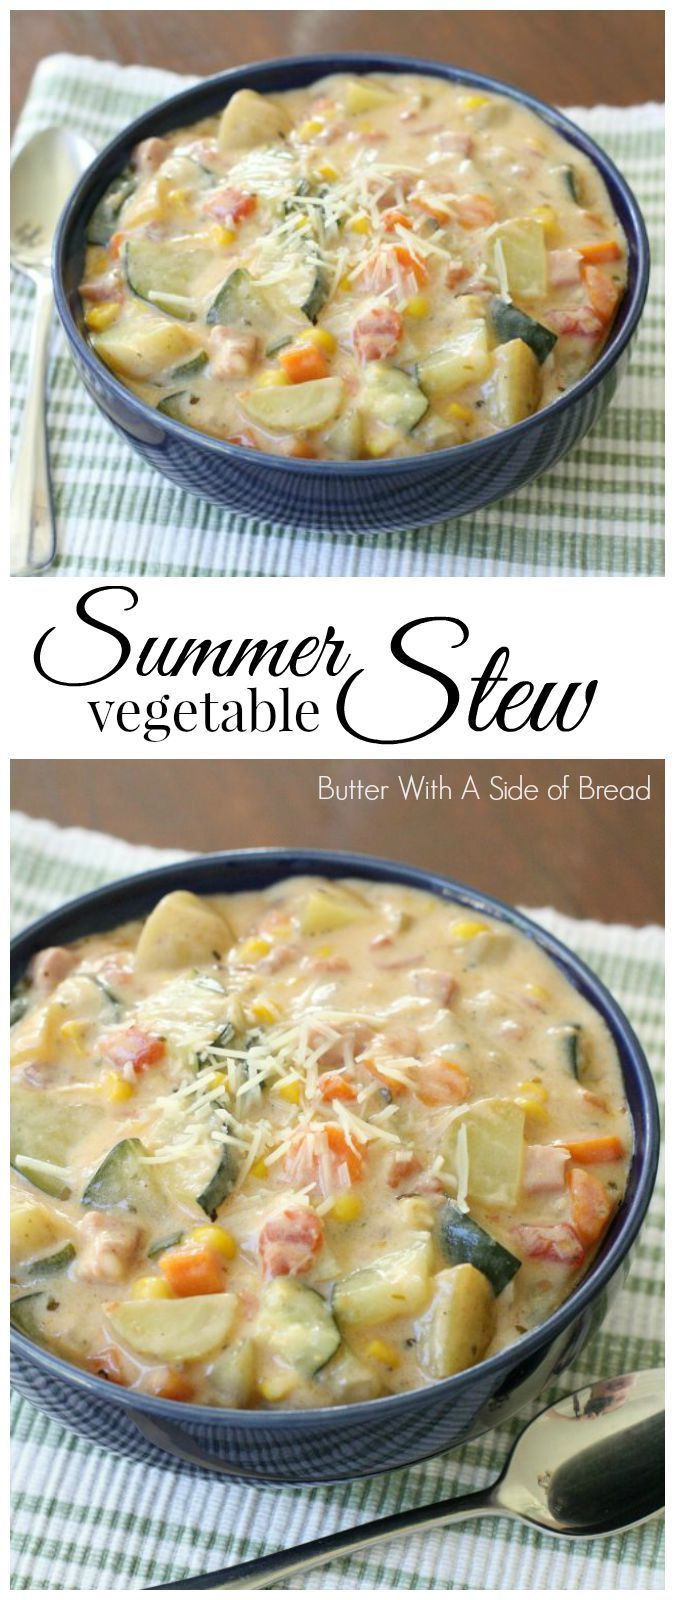 Summer Vegetable Stew - made with white beans instead of chicken.